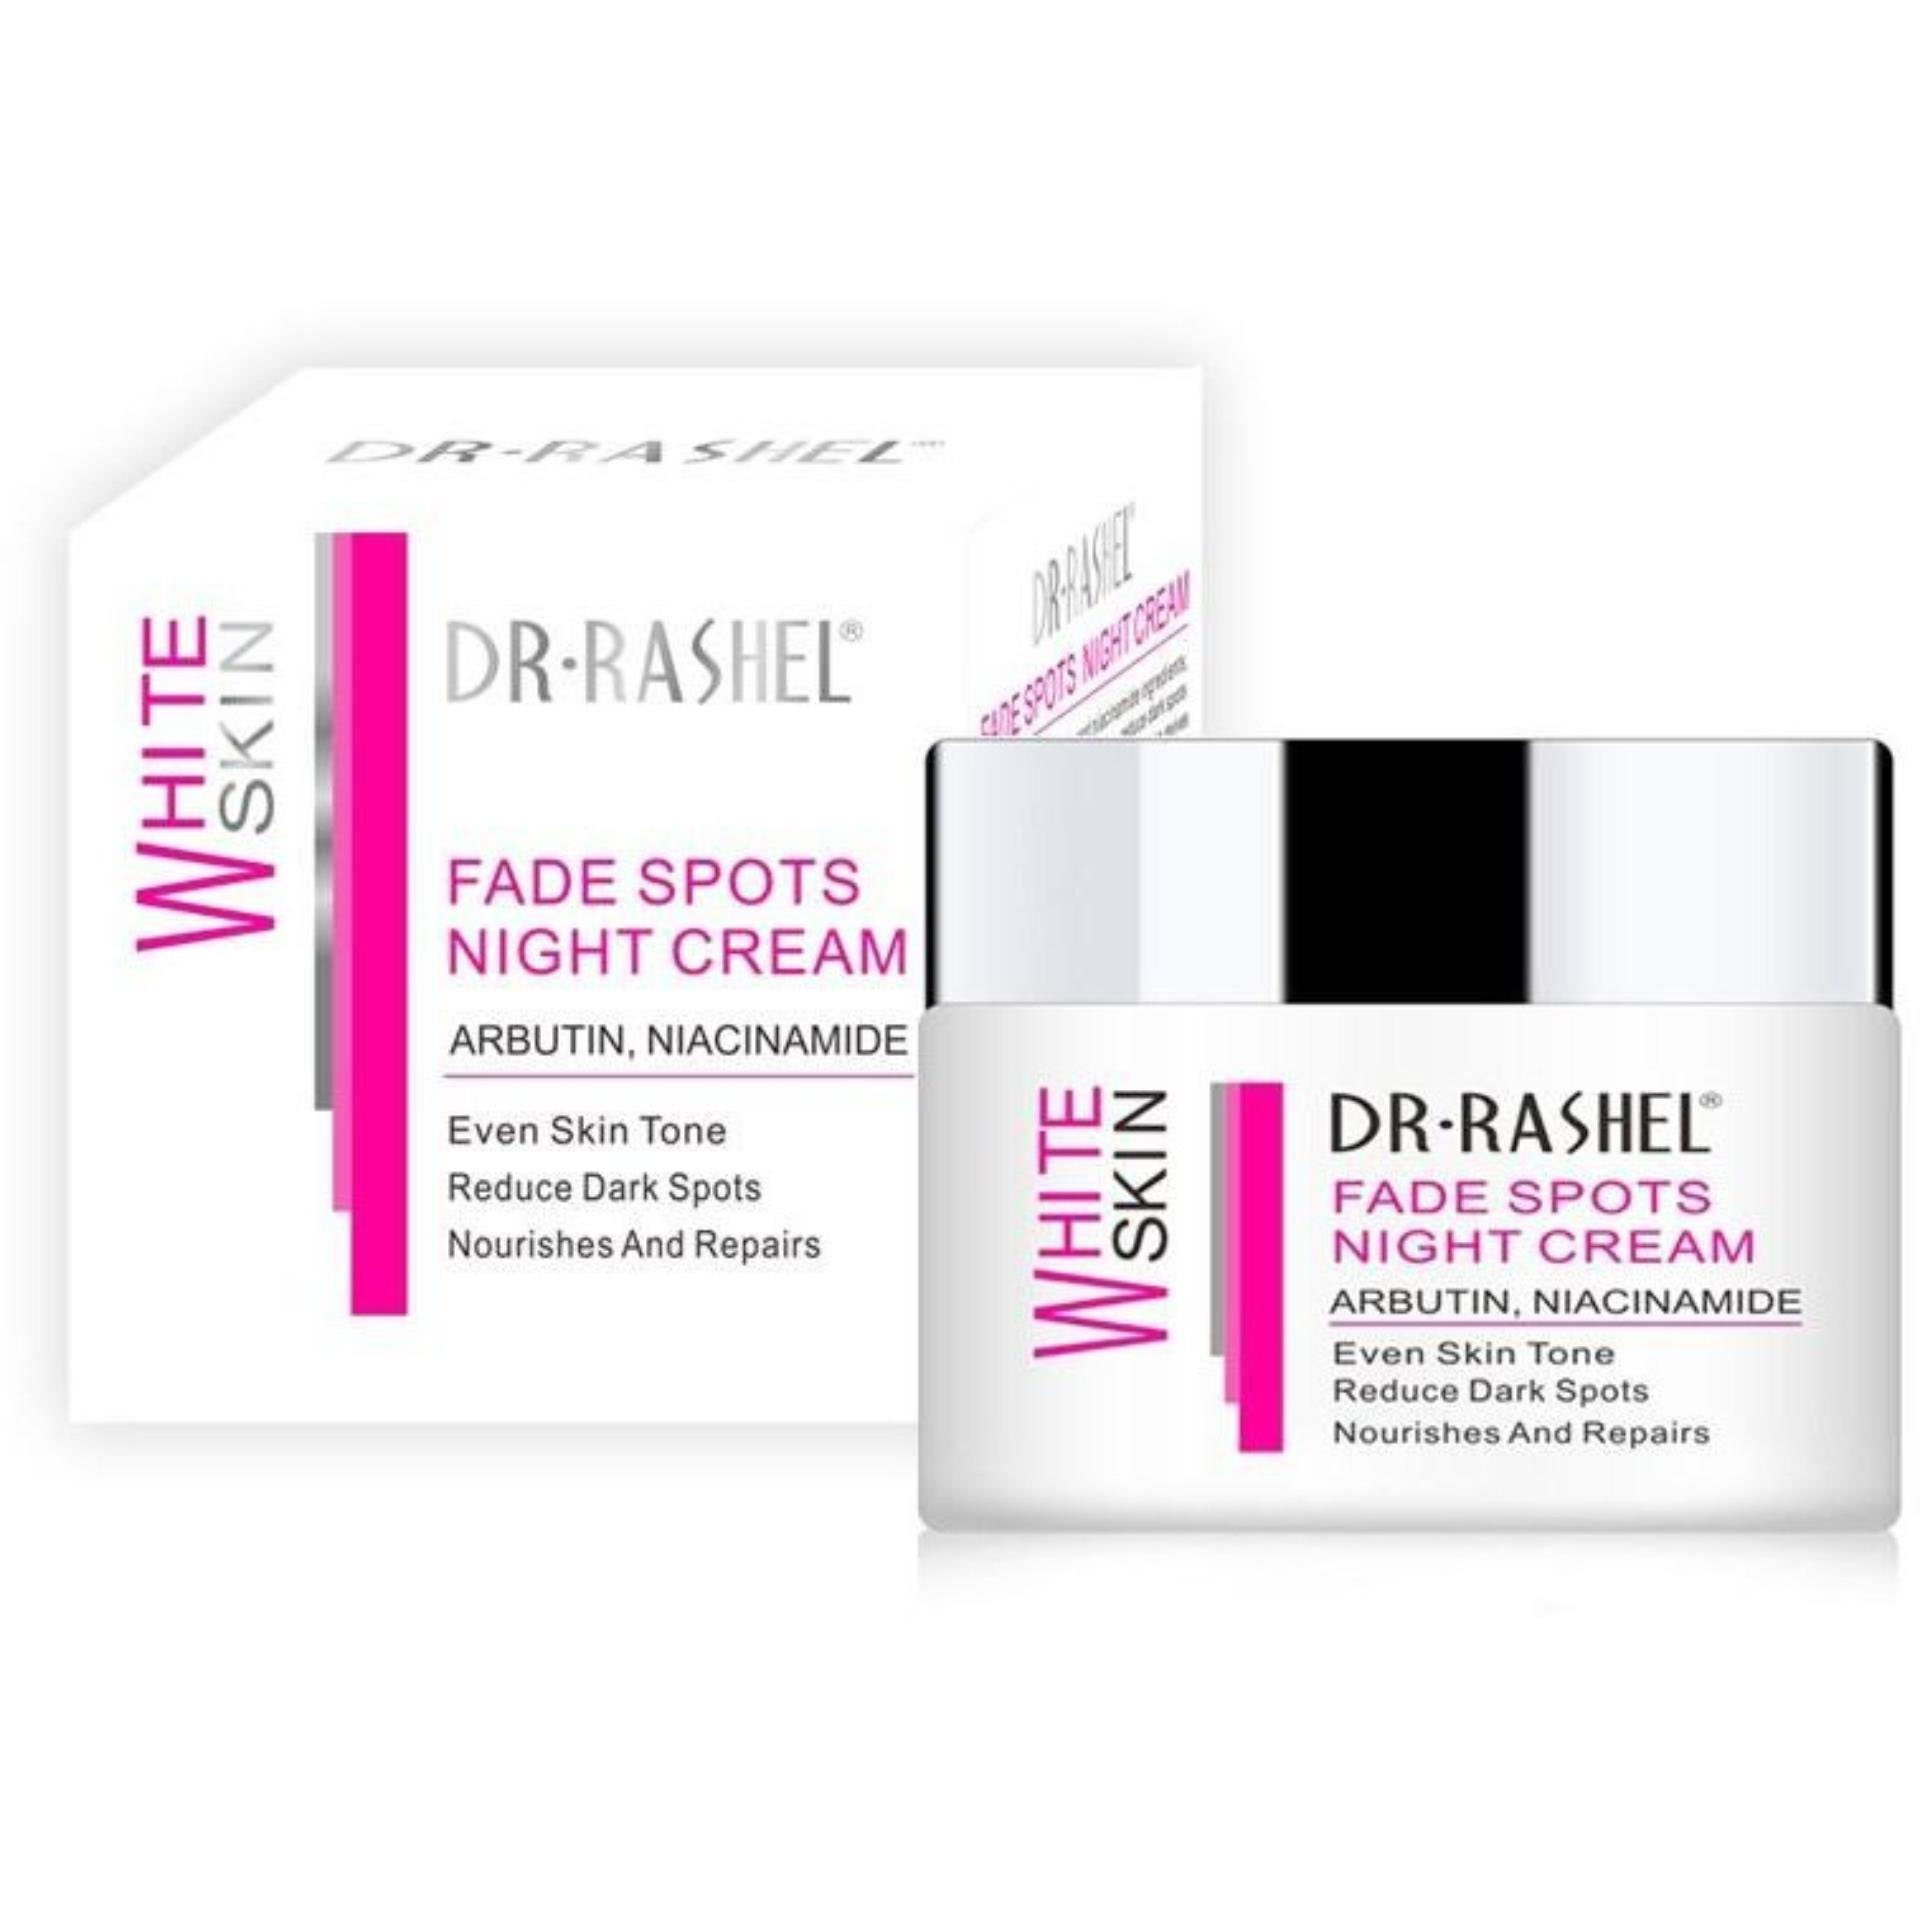 Dr Rashel Fade Spots Night Cream DRL-1435